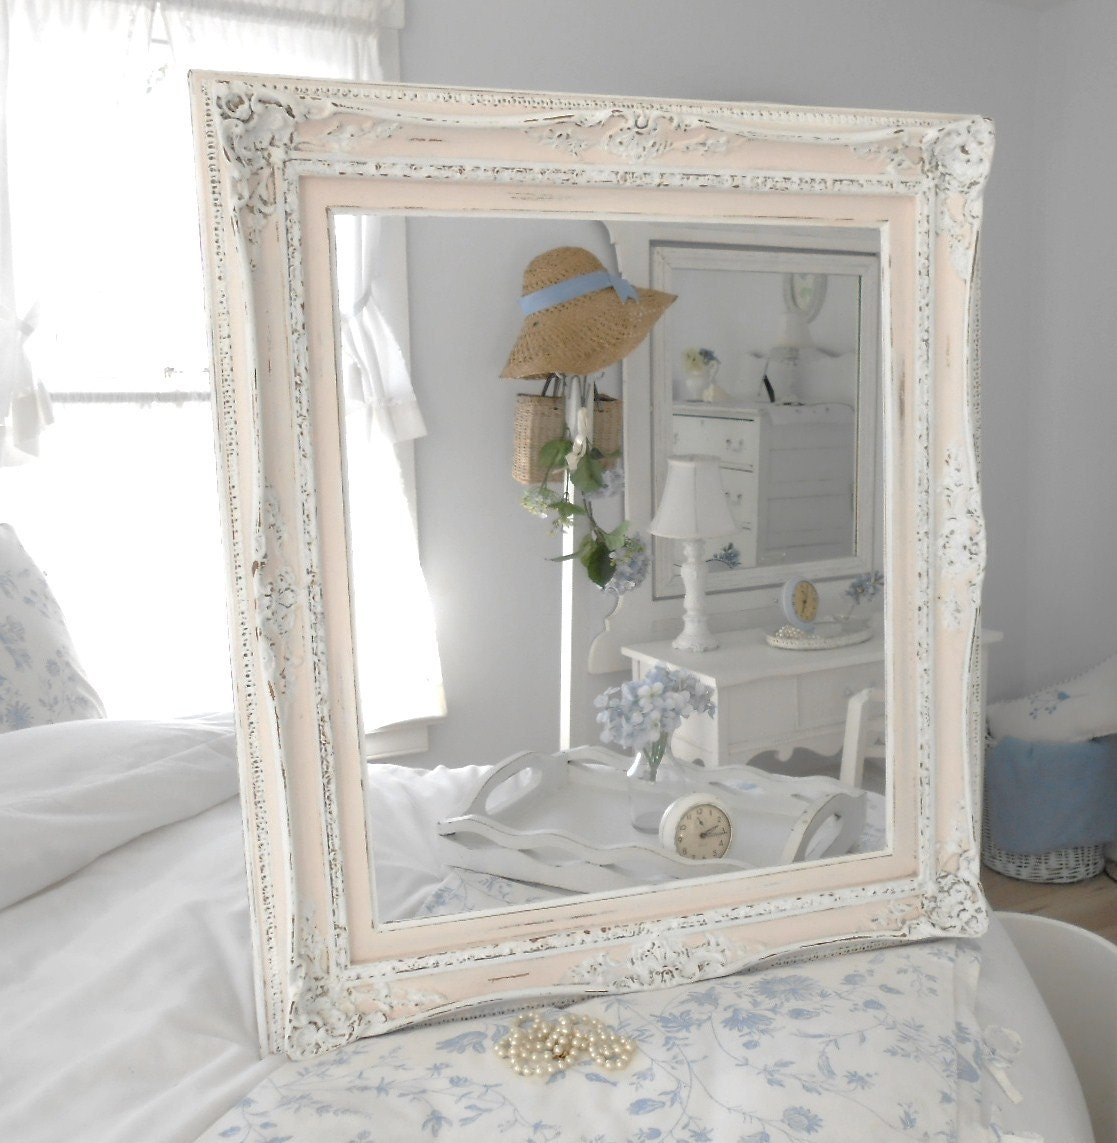 Shabby Chic Decor: Frame Shabby Chic Furniture Home Decor For Mirror Or Art